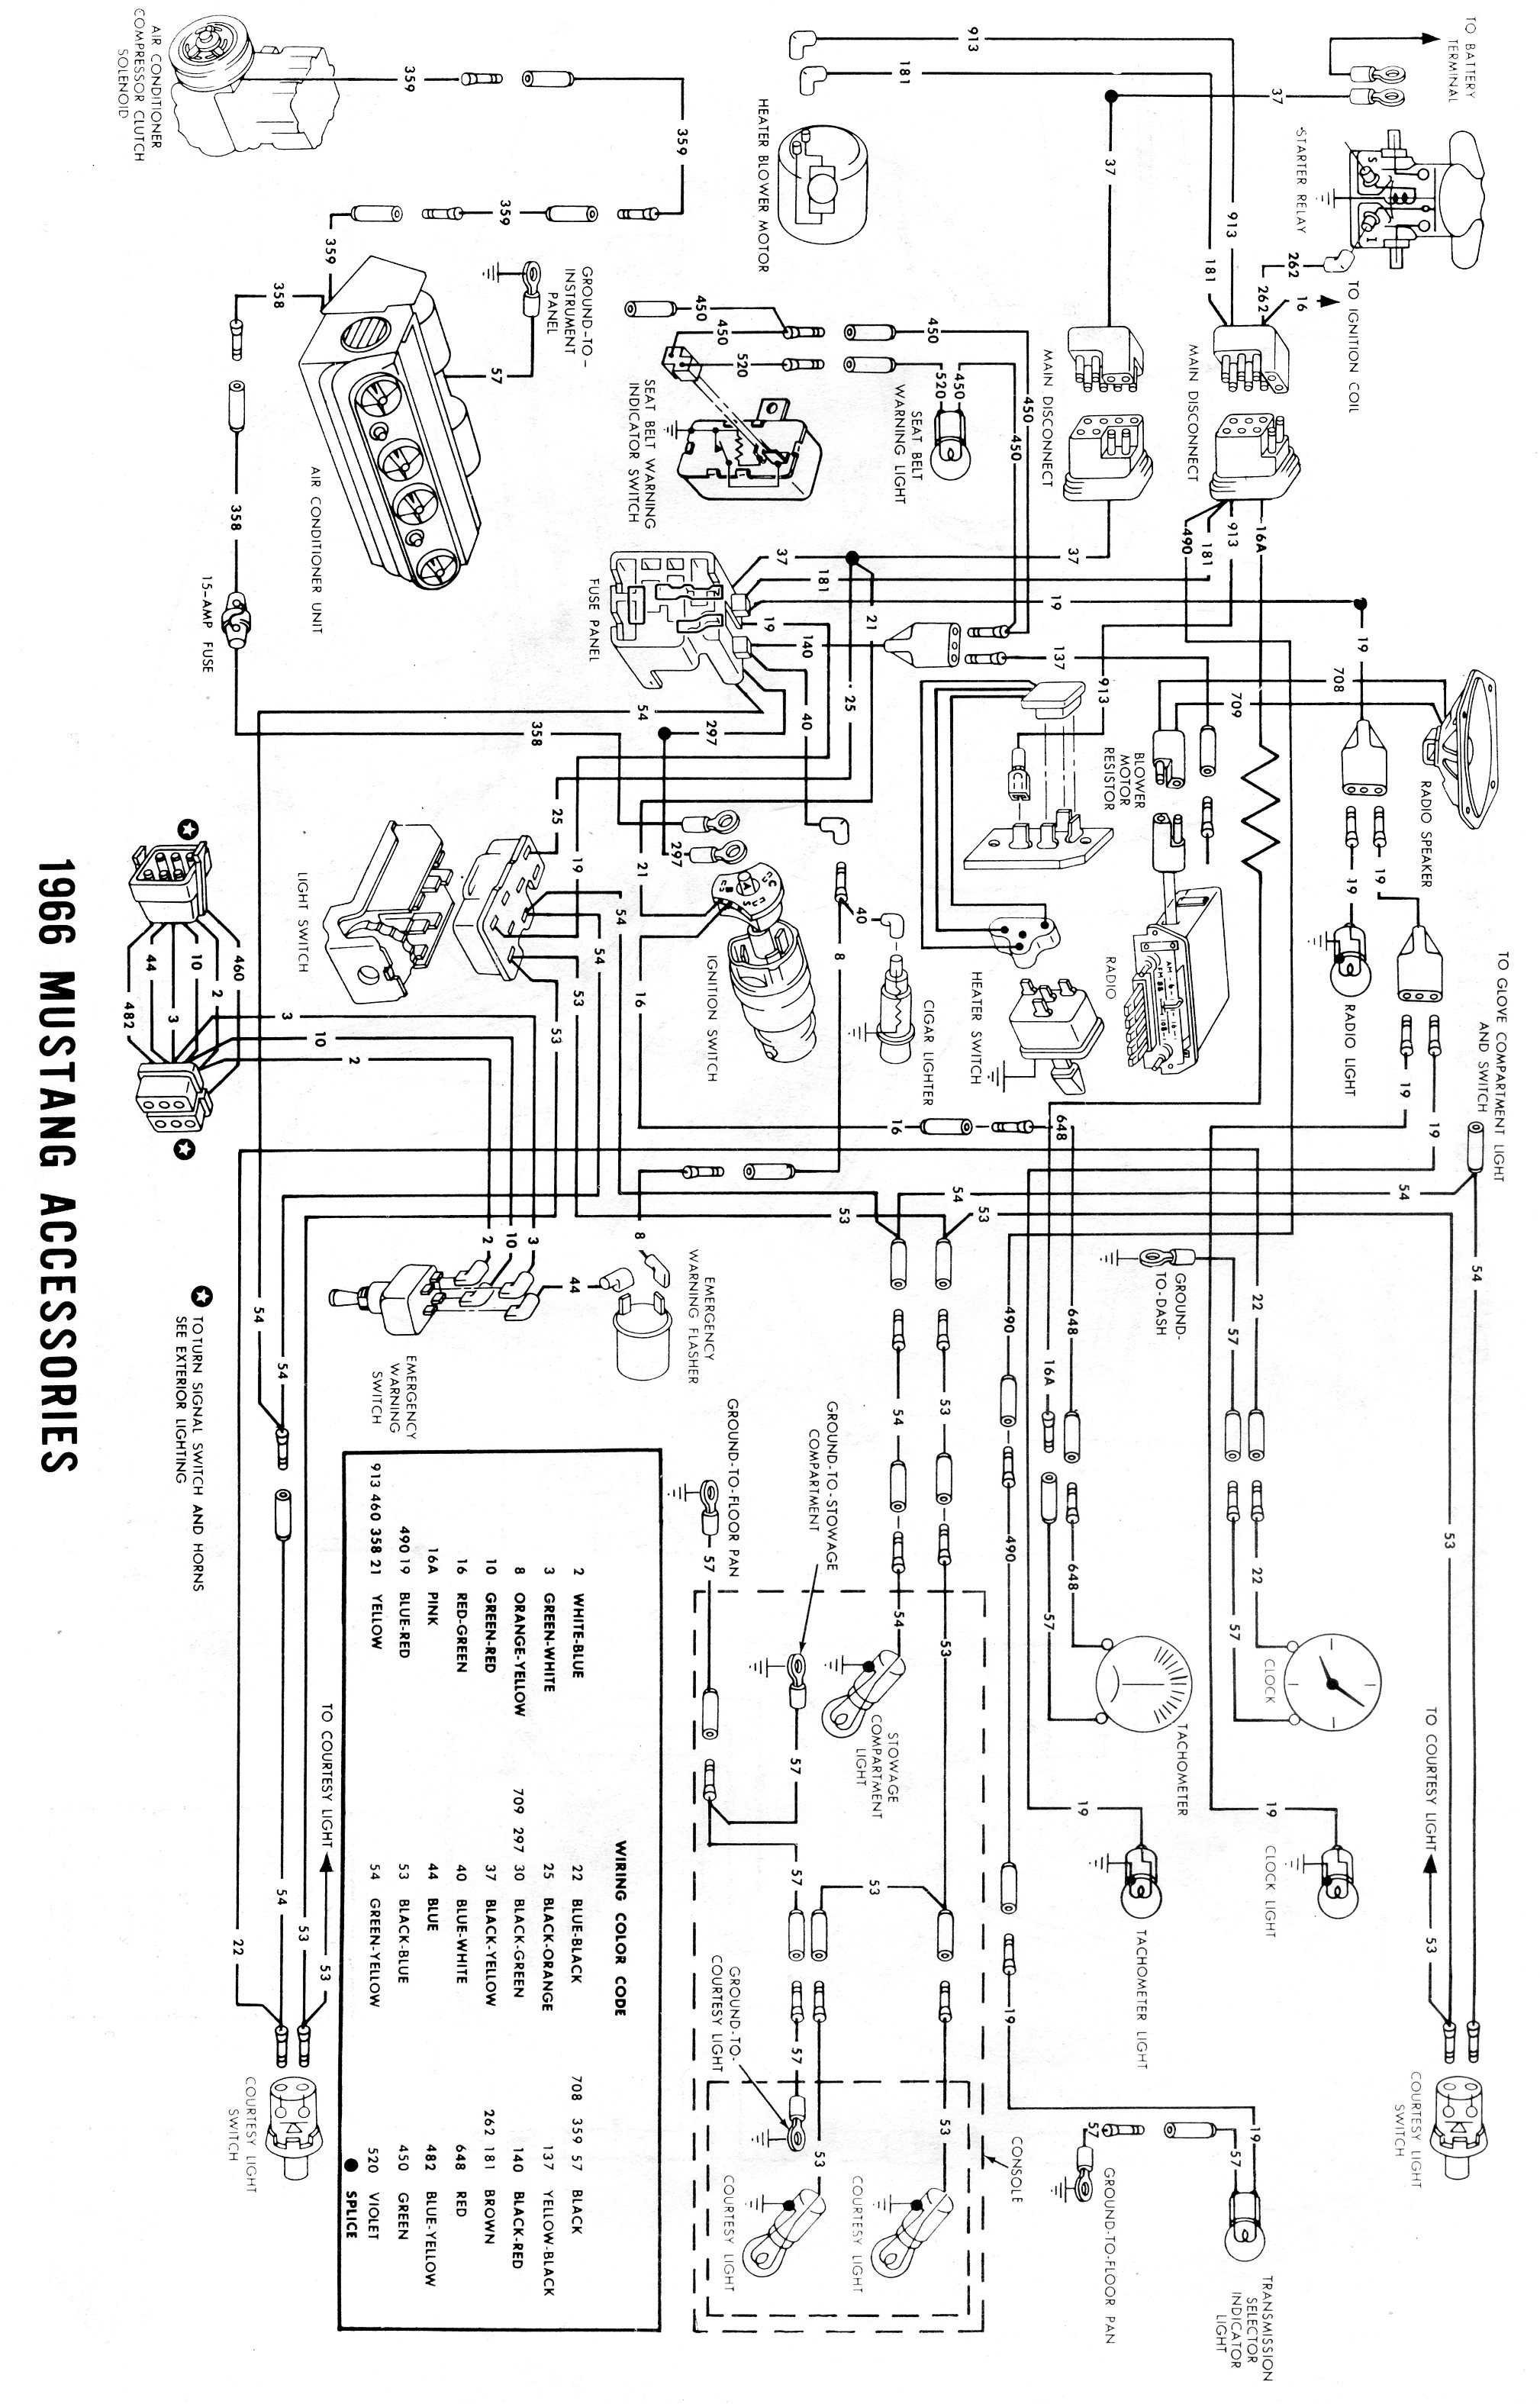 1965 ford thunderbird ignition switch wiring diagram